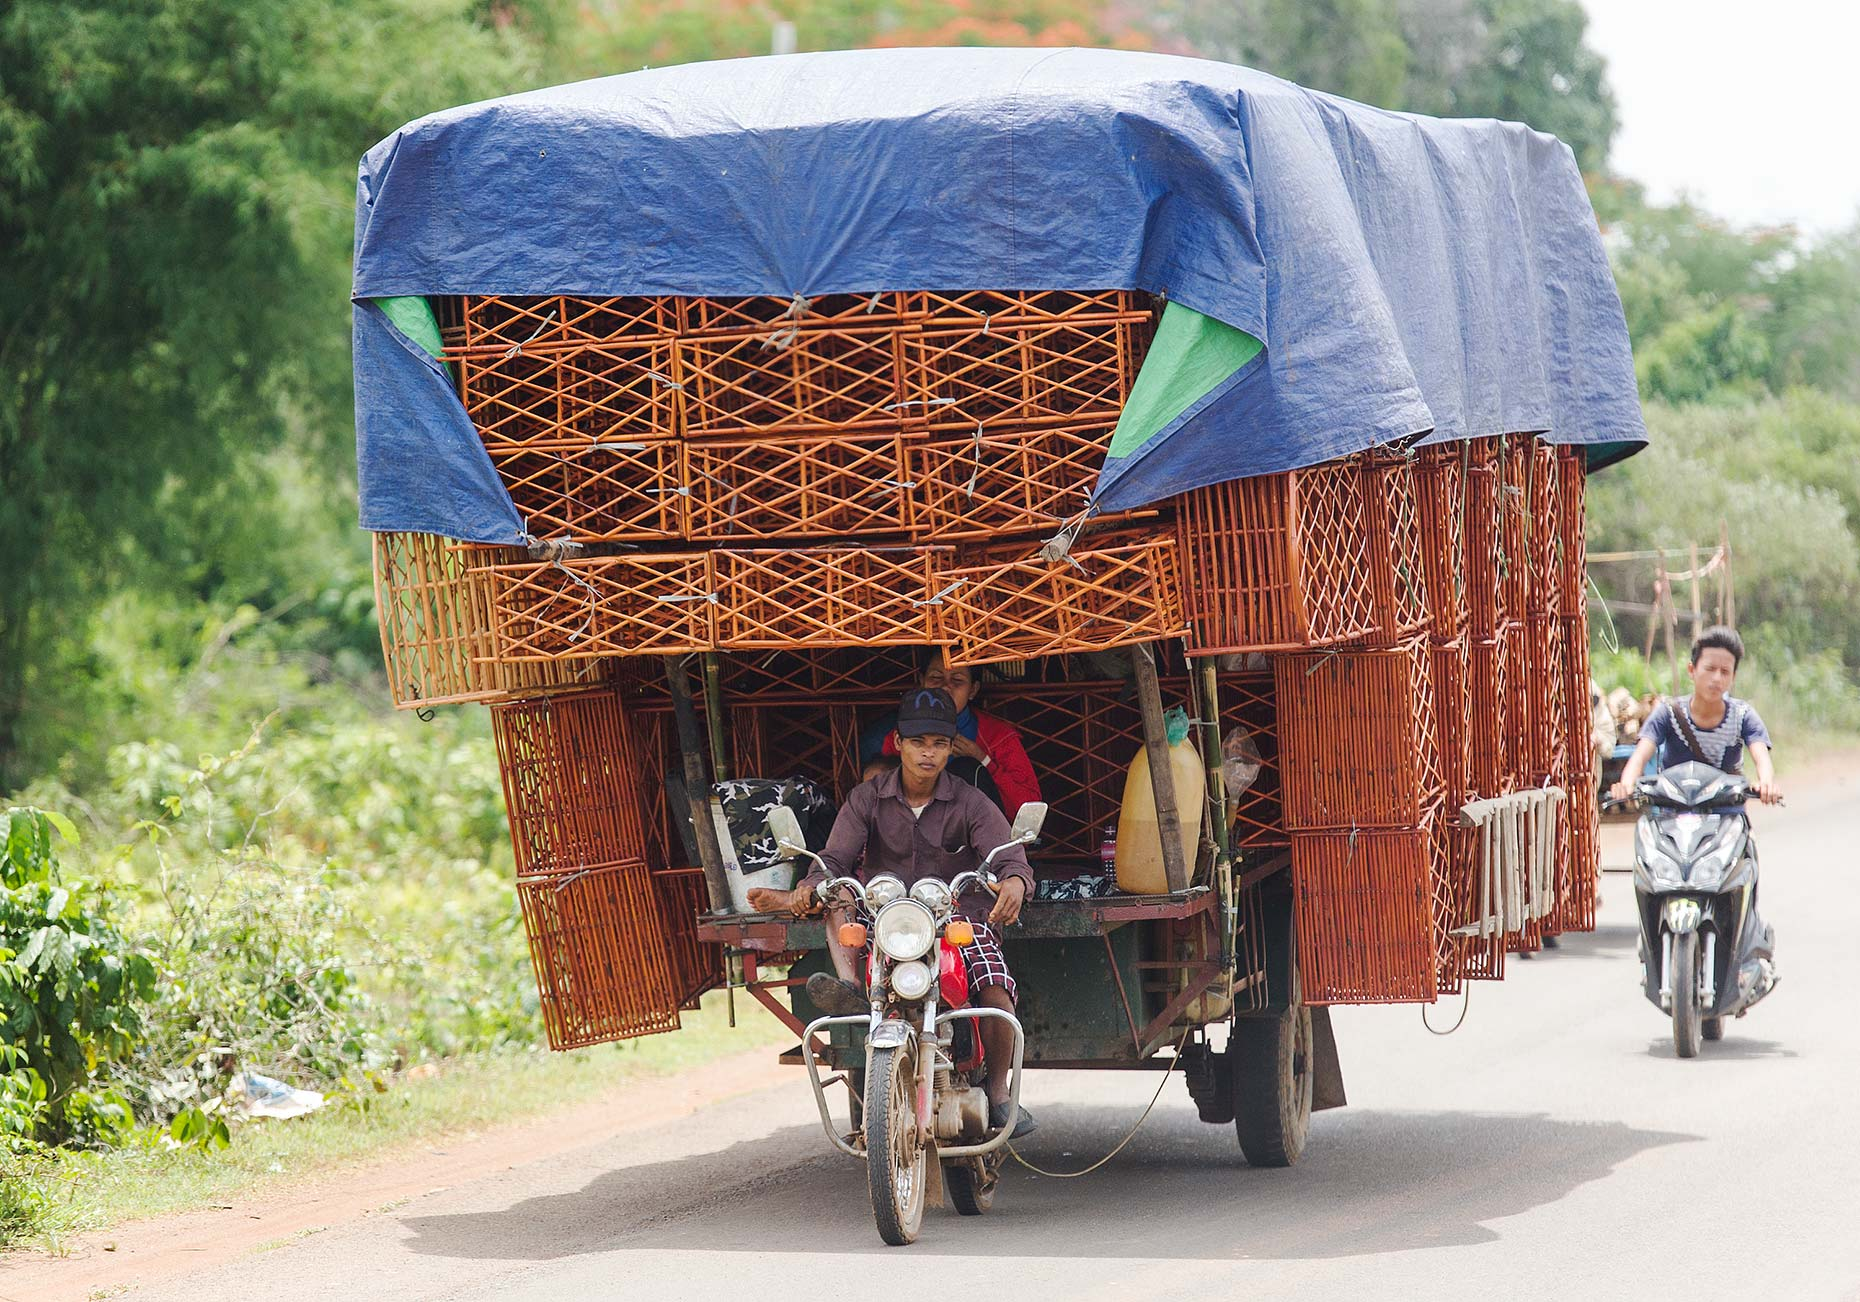 LAT_PhotoReporter_on-road-to-siem-reap_possible